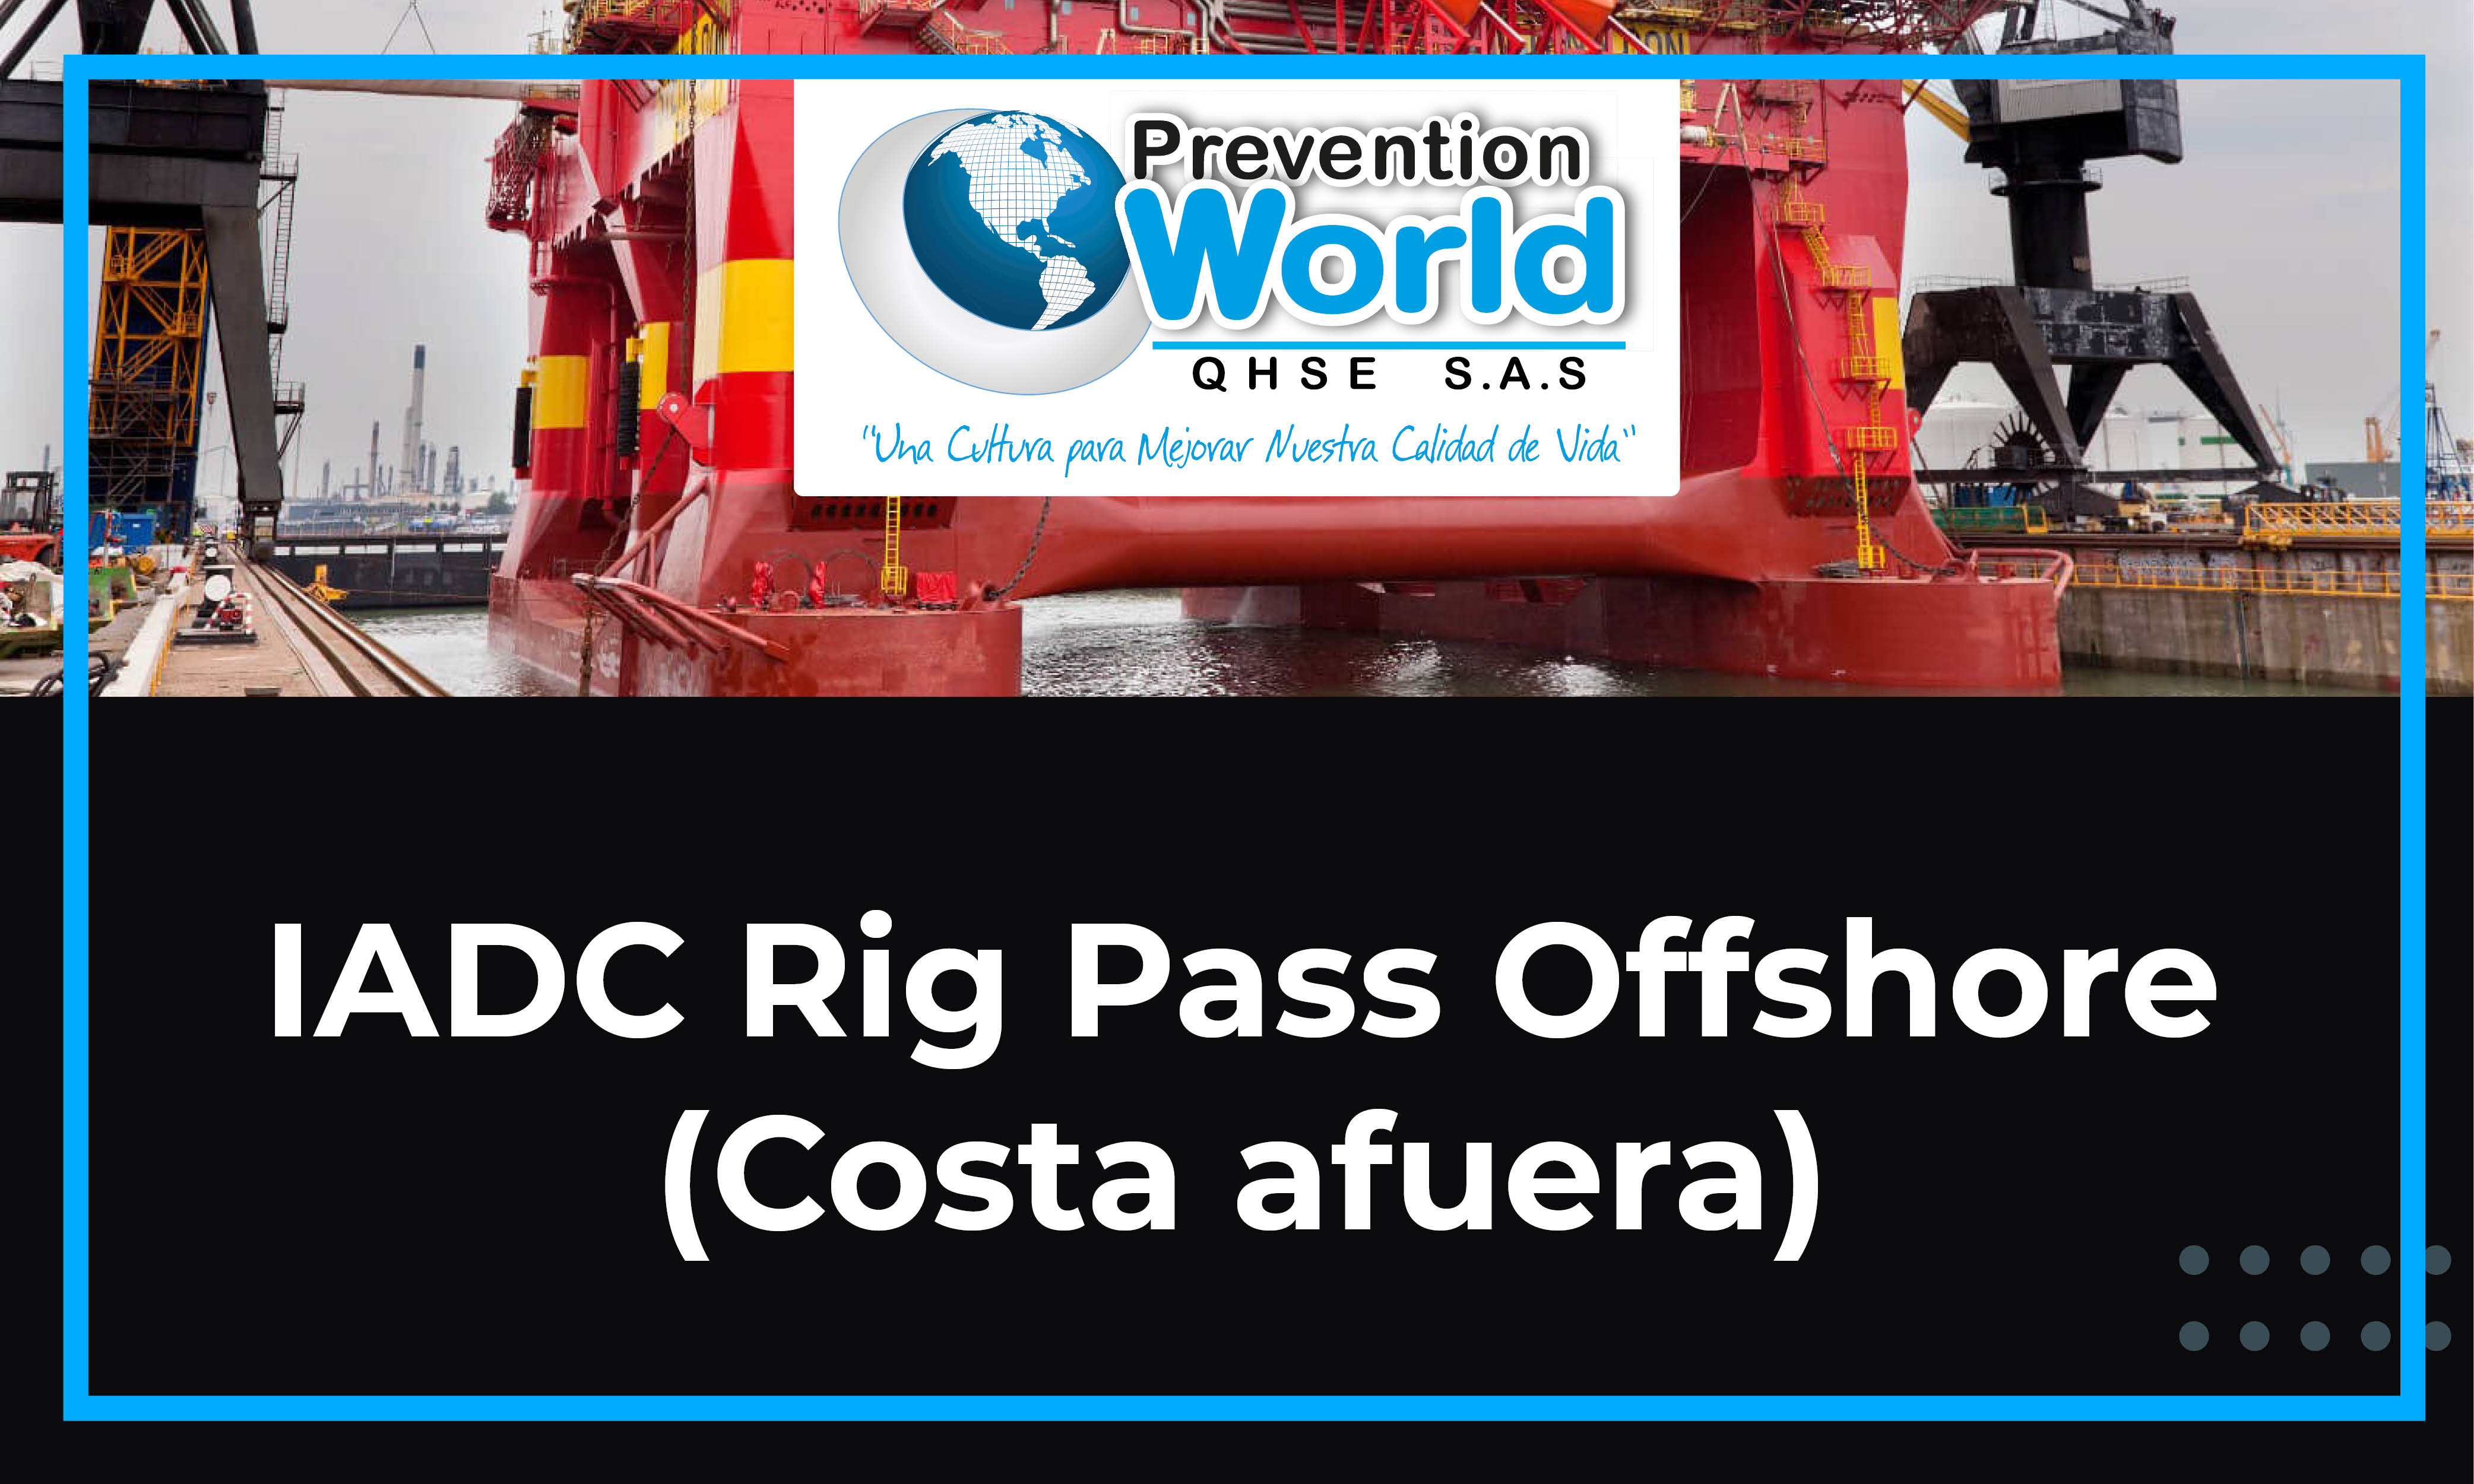 IADC Rig Pass Offshore (Costa afuera)